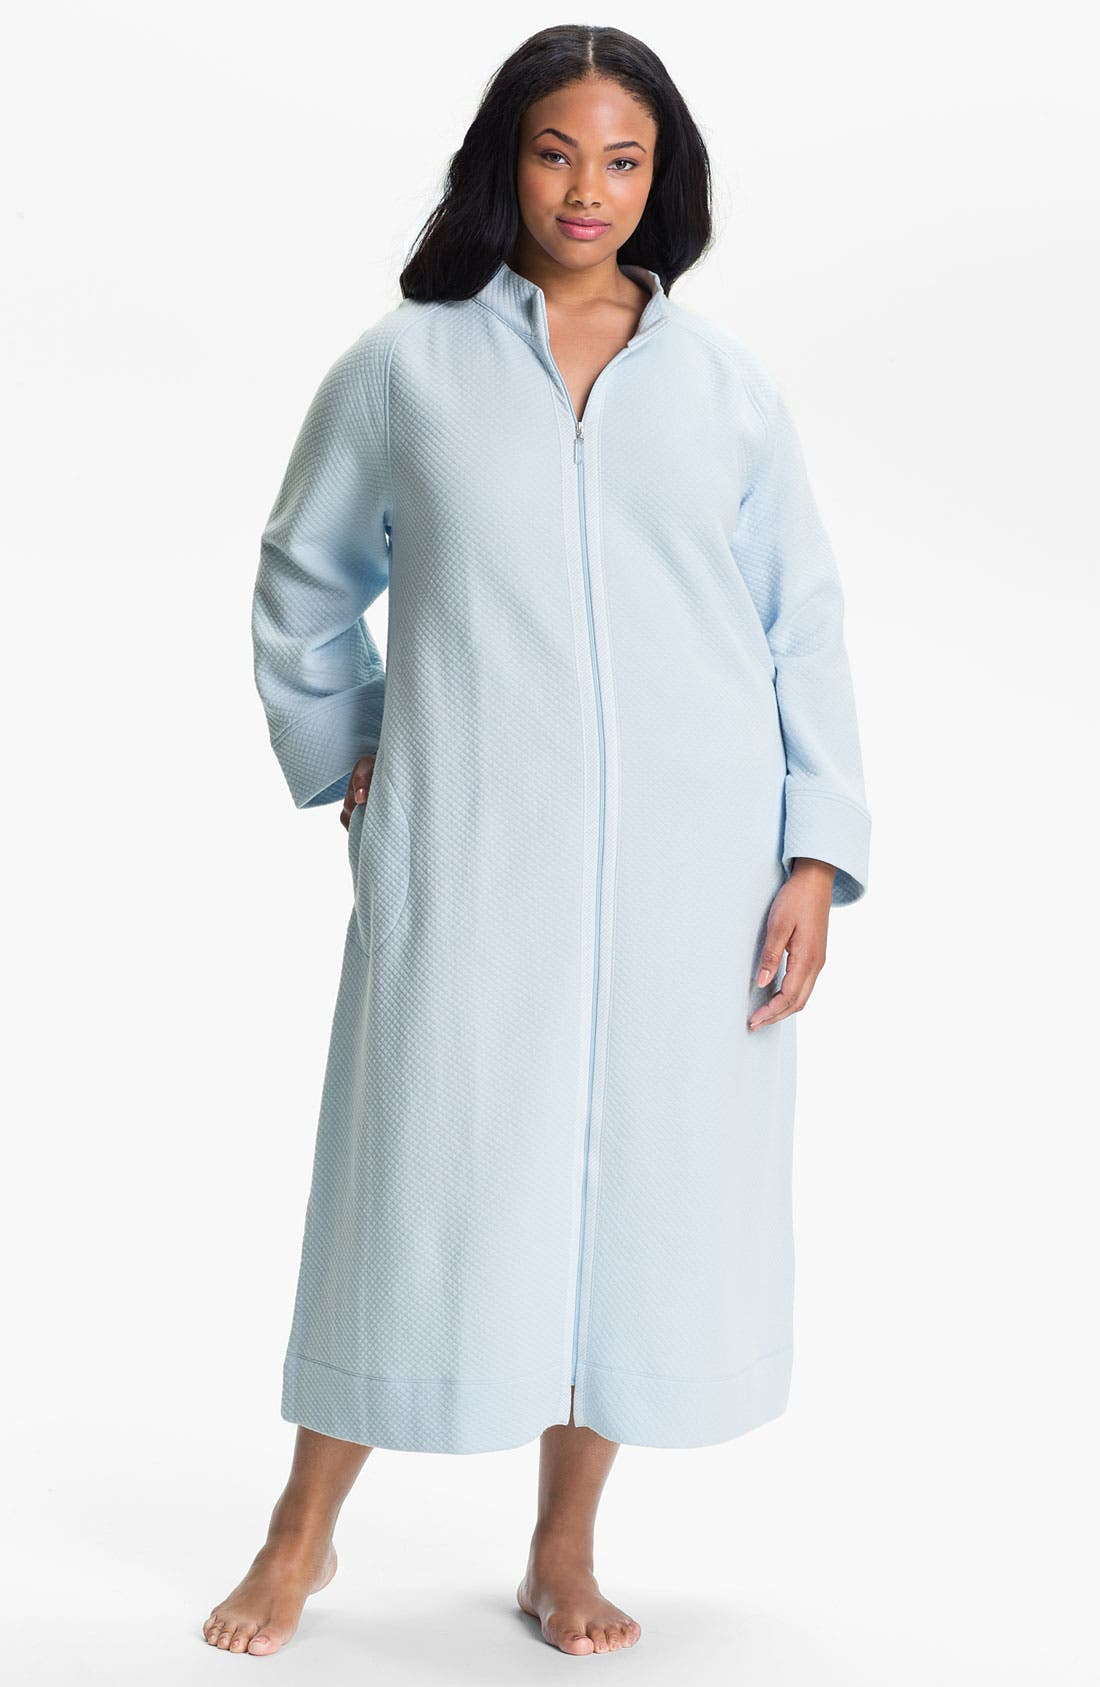 Main Image - Carole Hochman Designs Diamond Quilt Zip Front Robe (Plus)